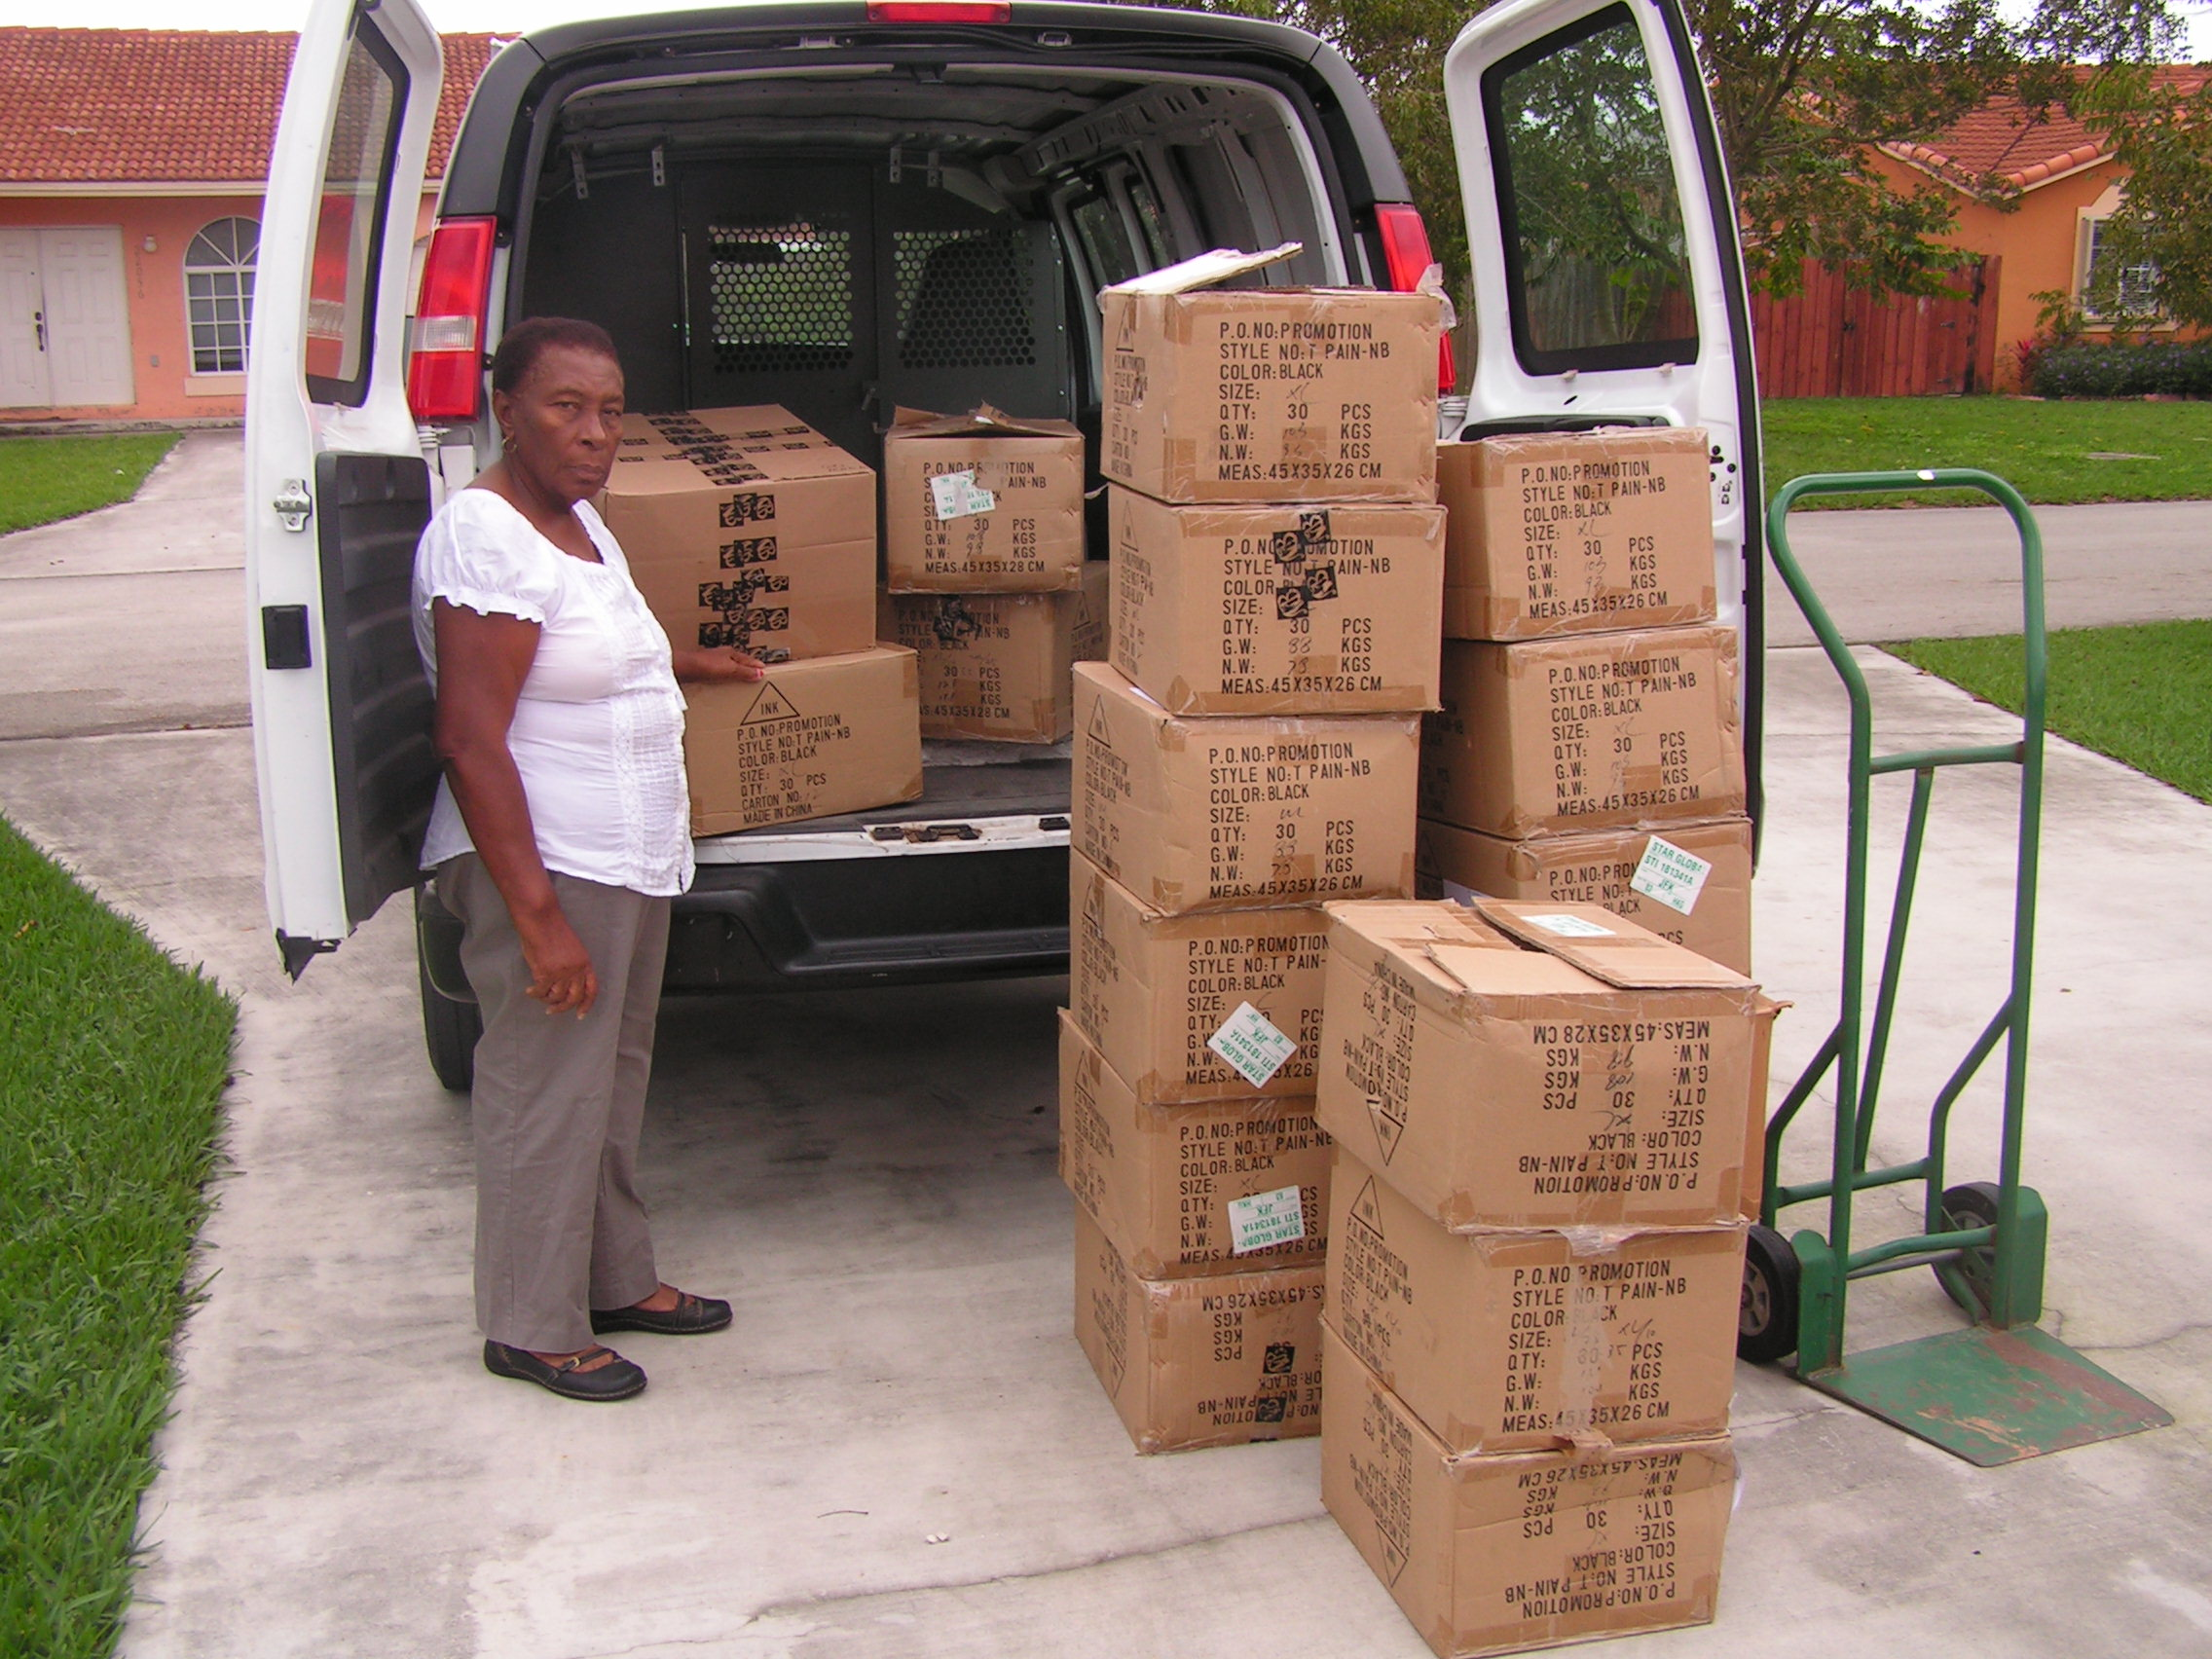 Mrs. Buton came from Haiti after the earthquake to help with Haiti Relief efforts in Miami.